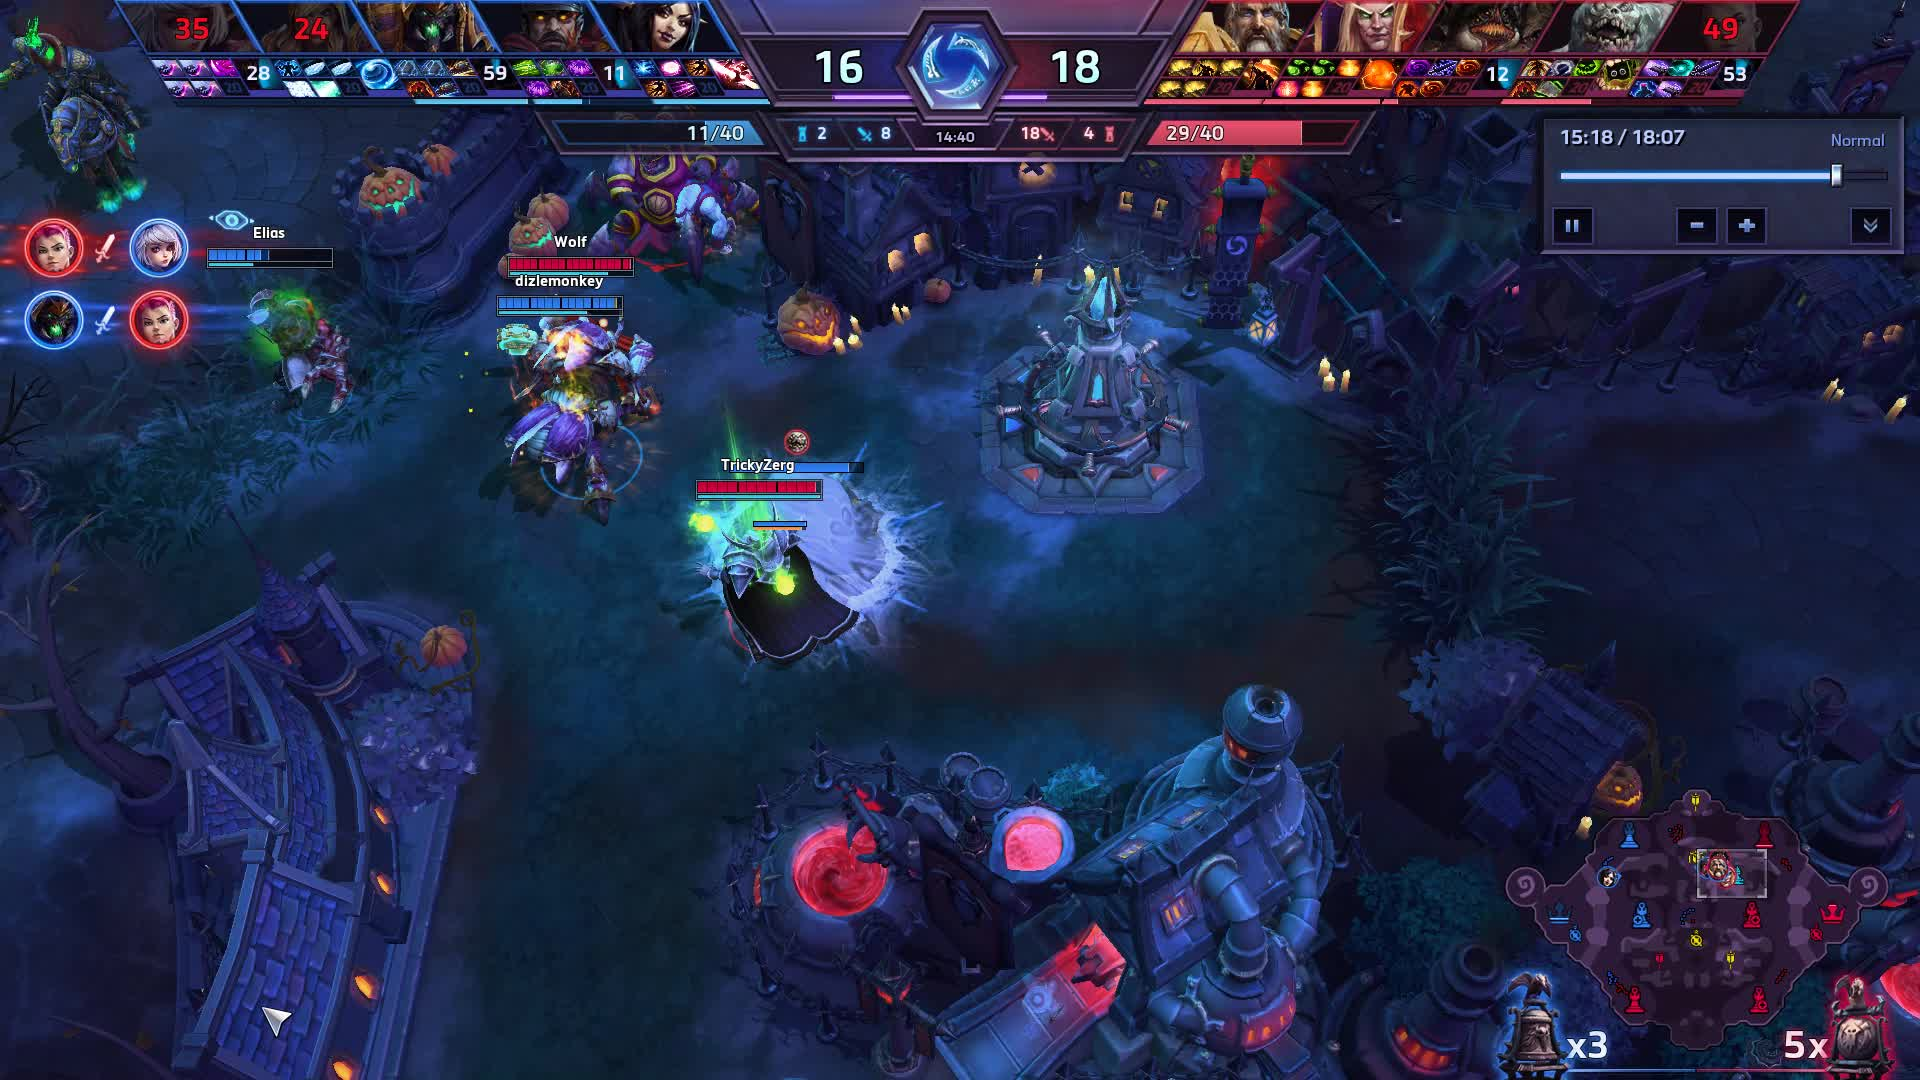 heroesofthestorm, Heroes of the Storm 2018.12.12 - 18.42.01.05.DVR GIFs